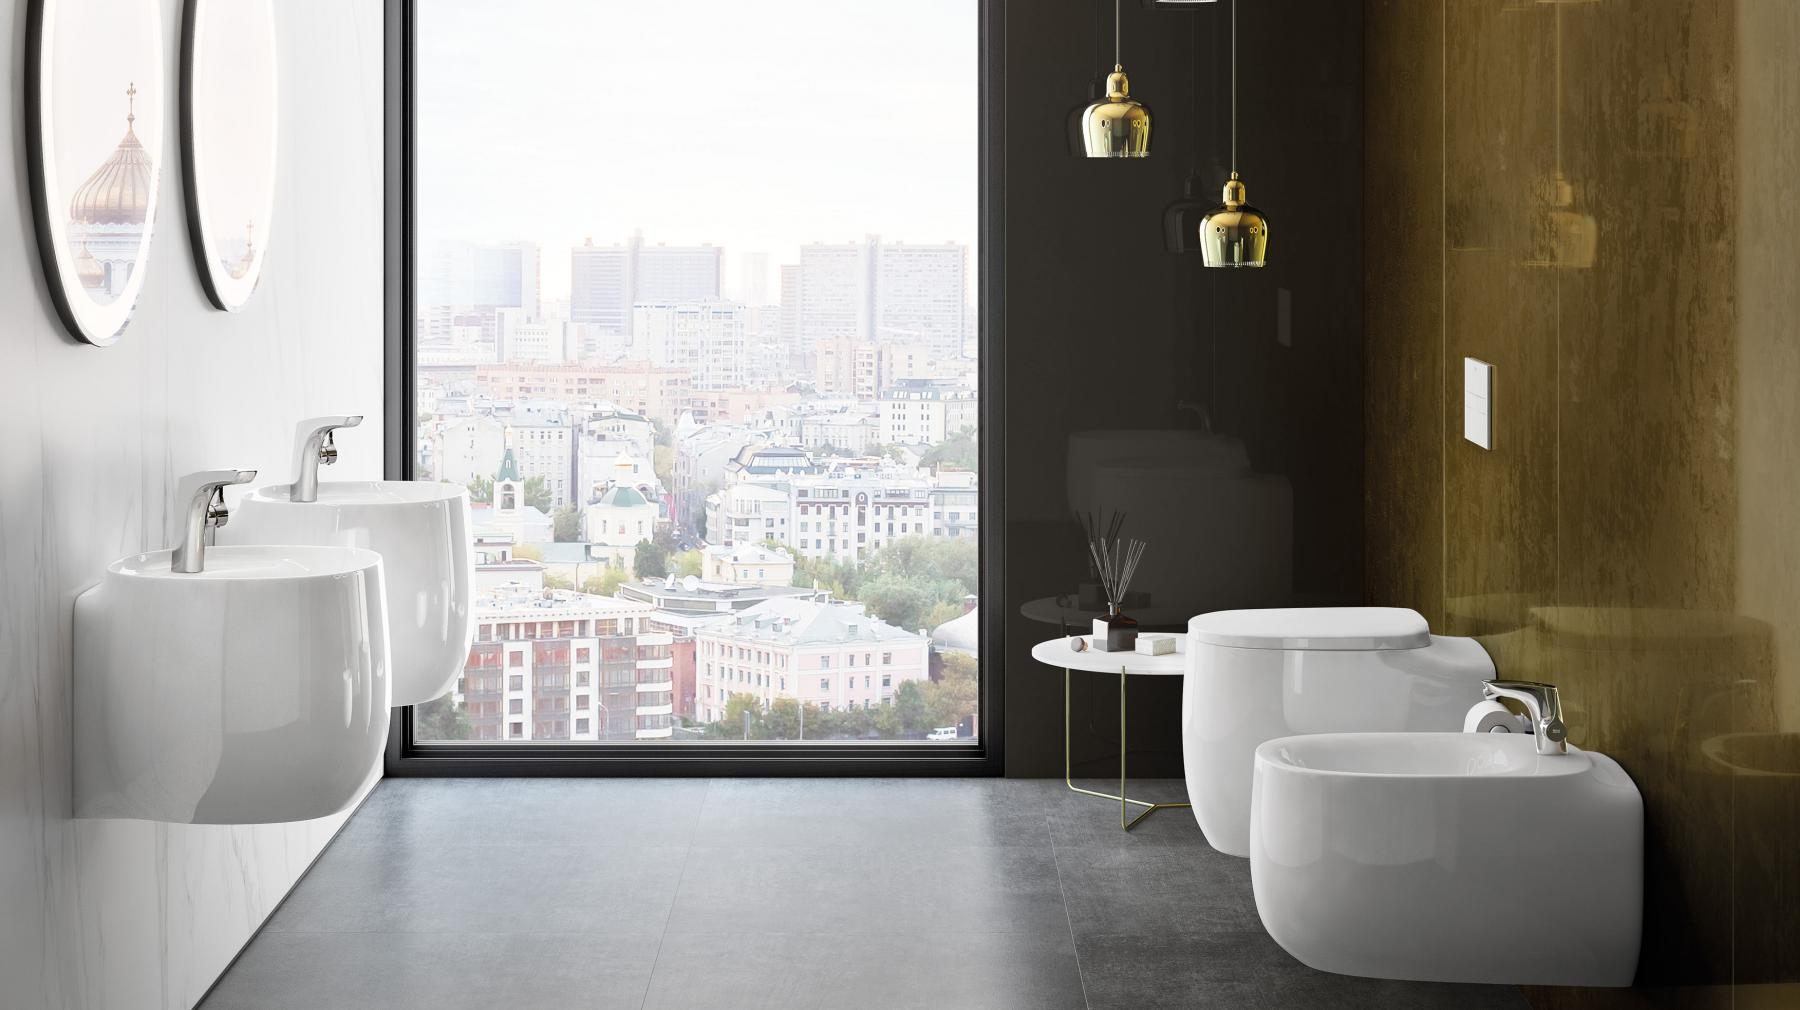 Beyond - modern and innovative bathroom designs | Roca Life